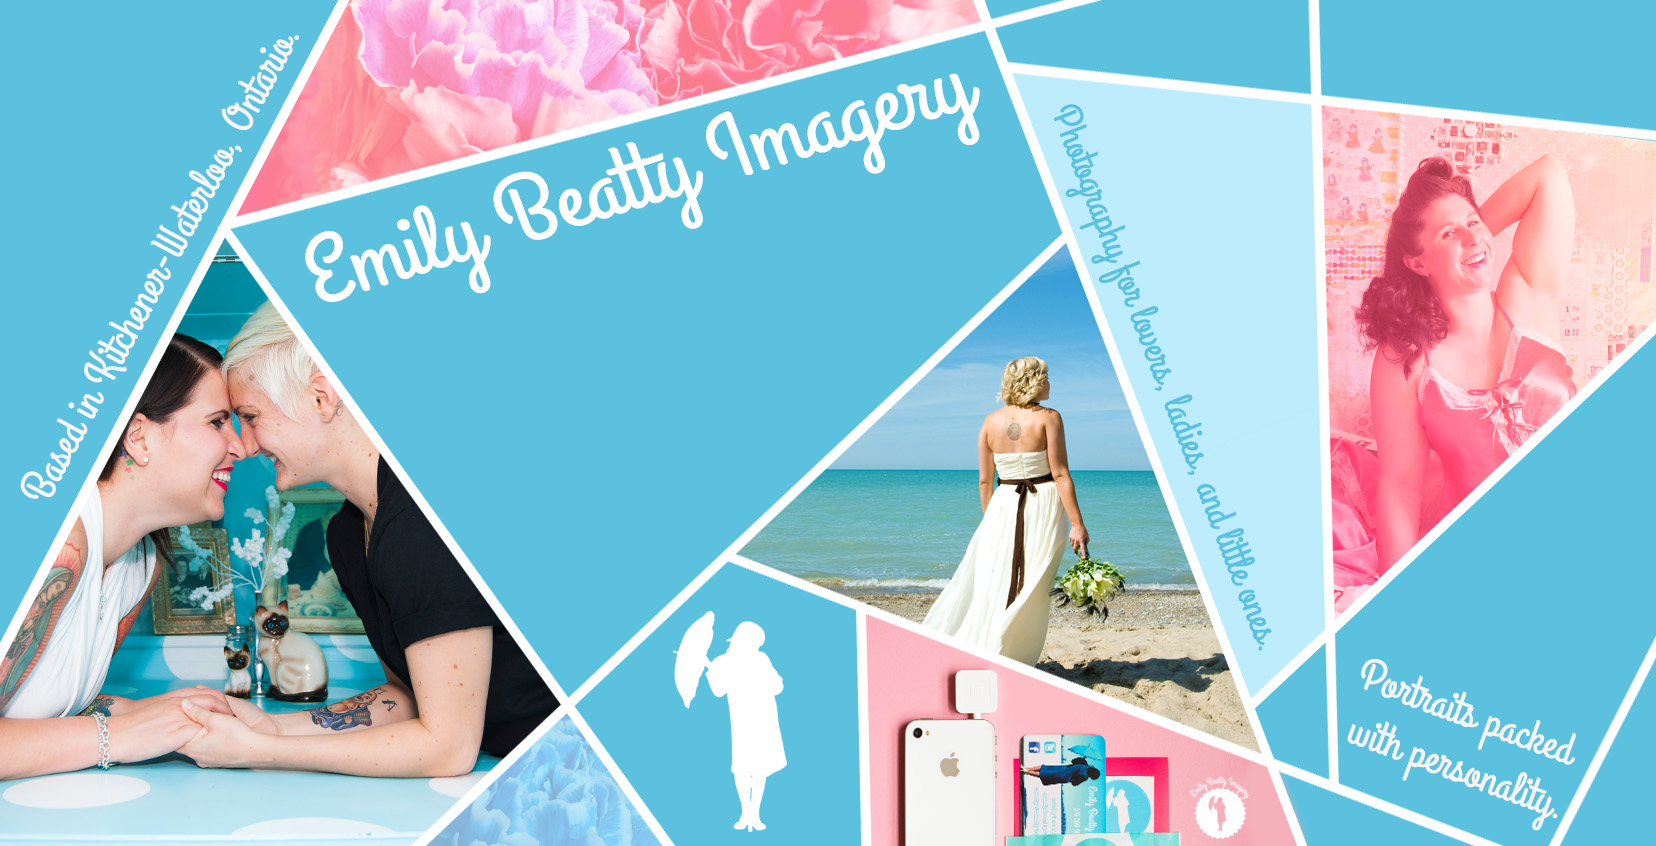 Emily Beatty Imagery – The Blog